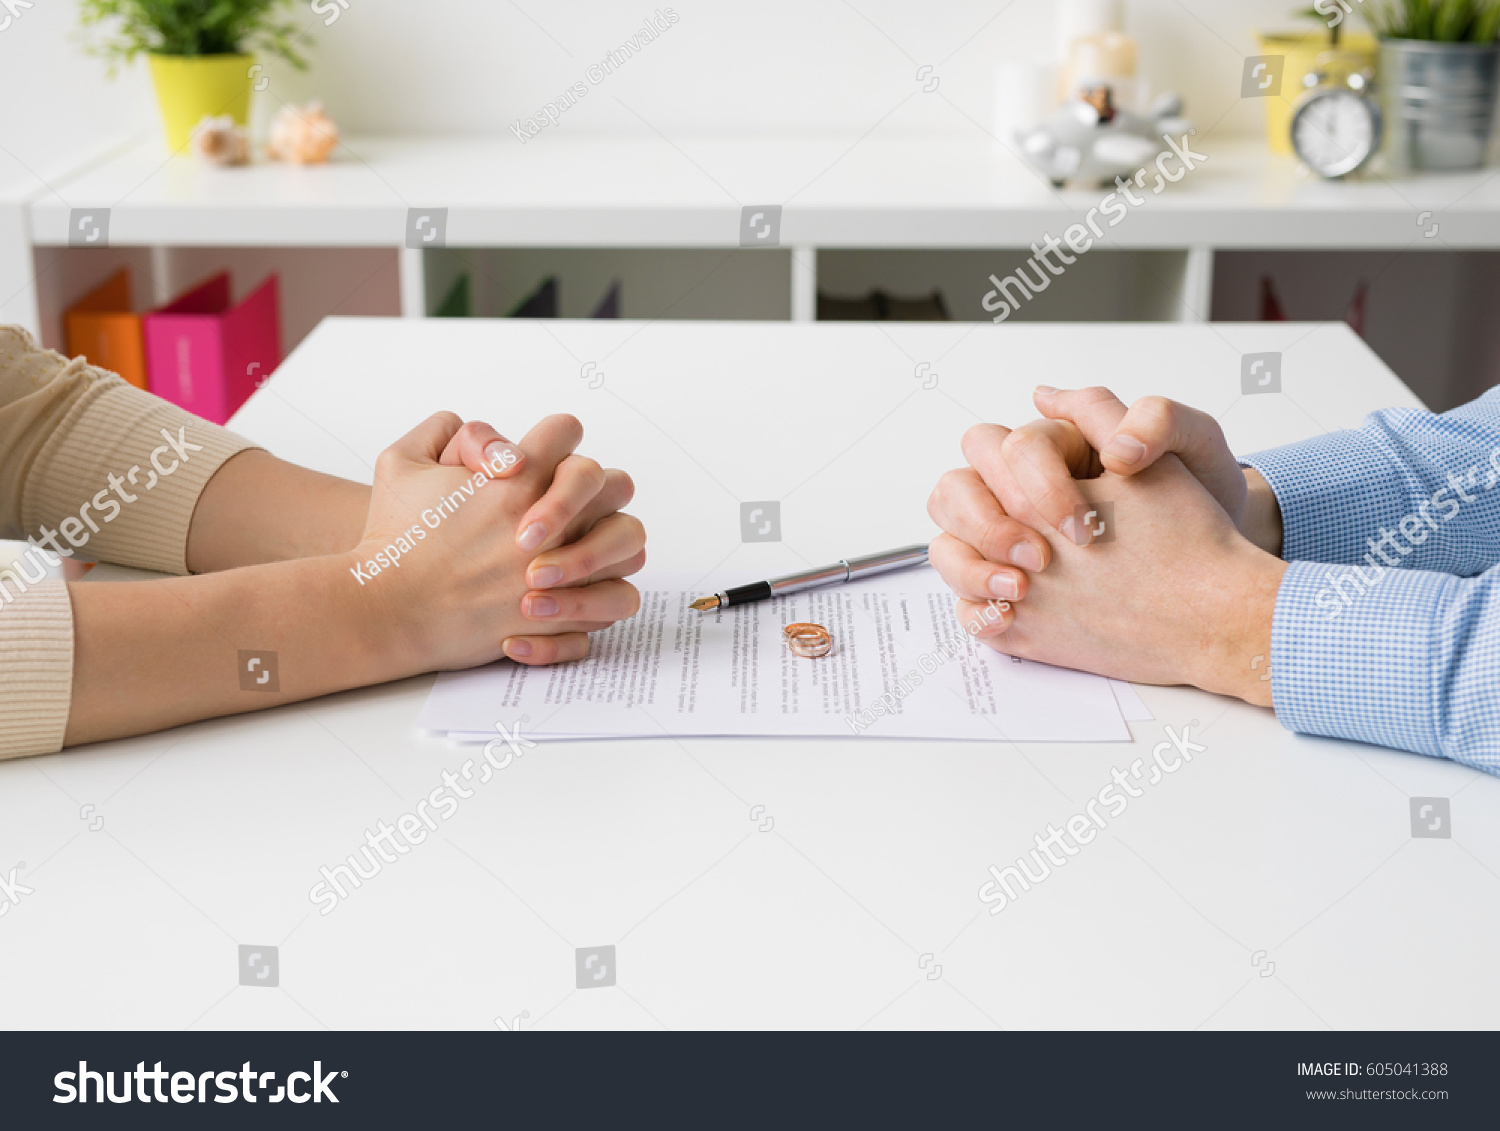 Couple going through divorce signing papers #605041388